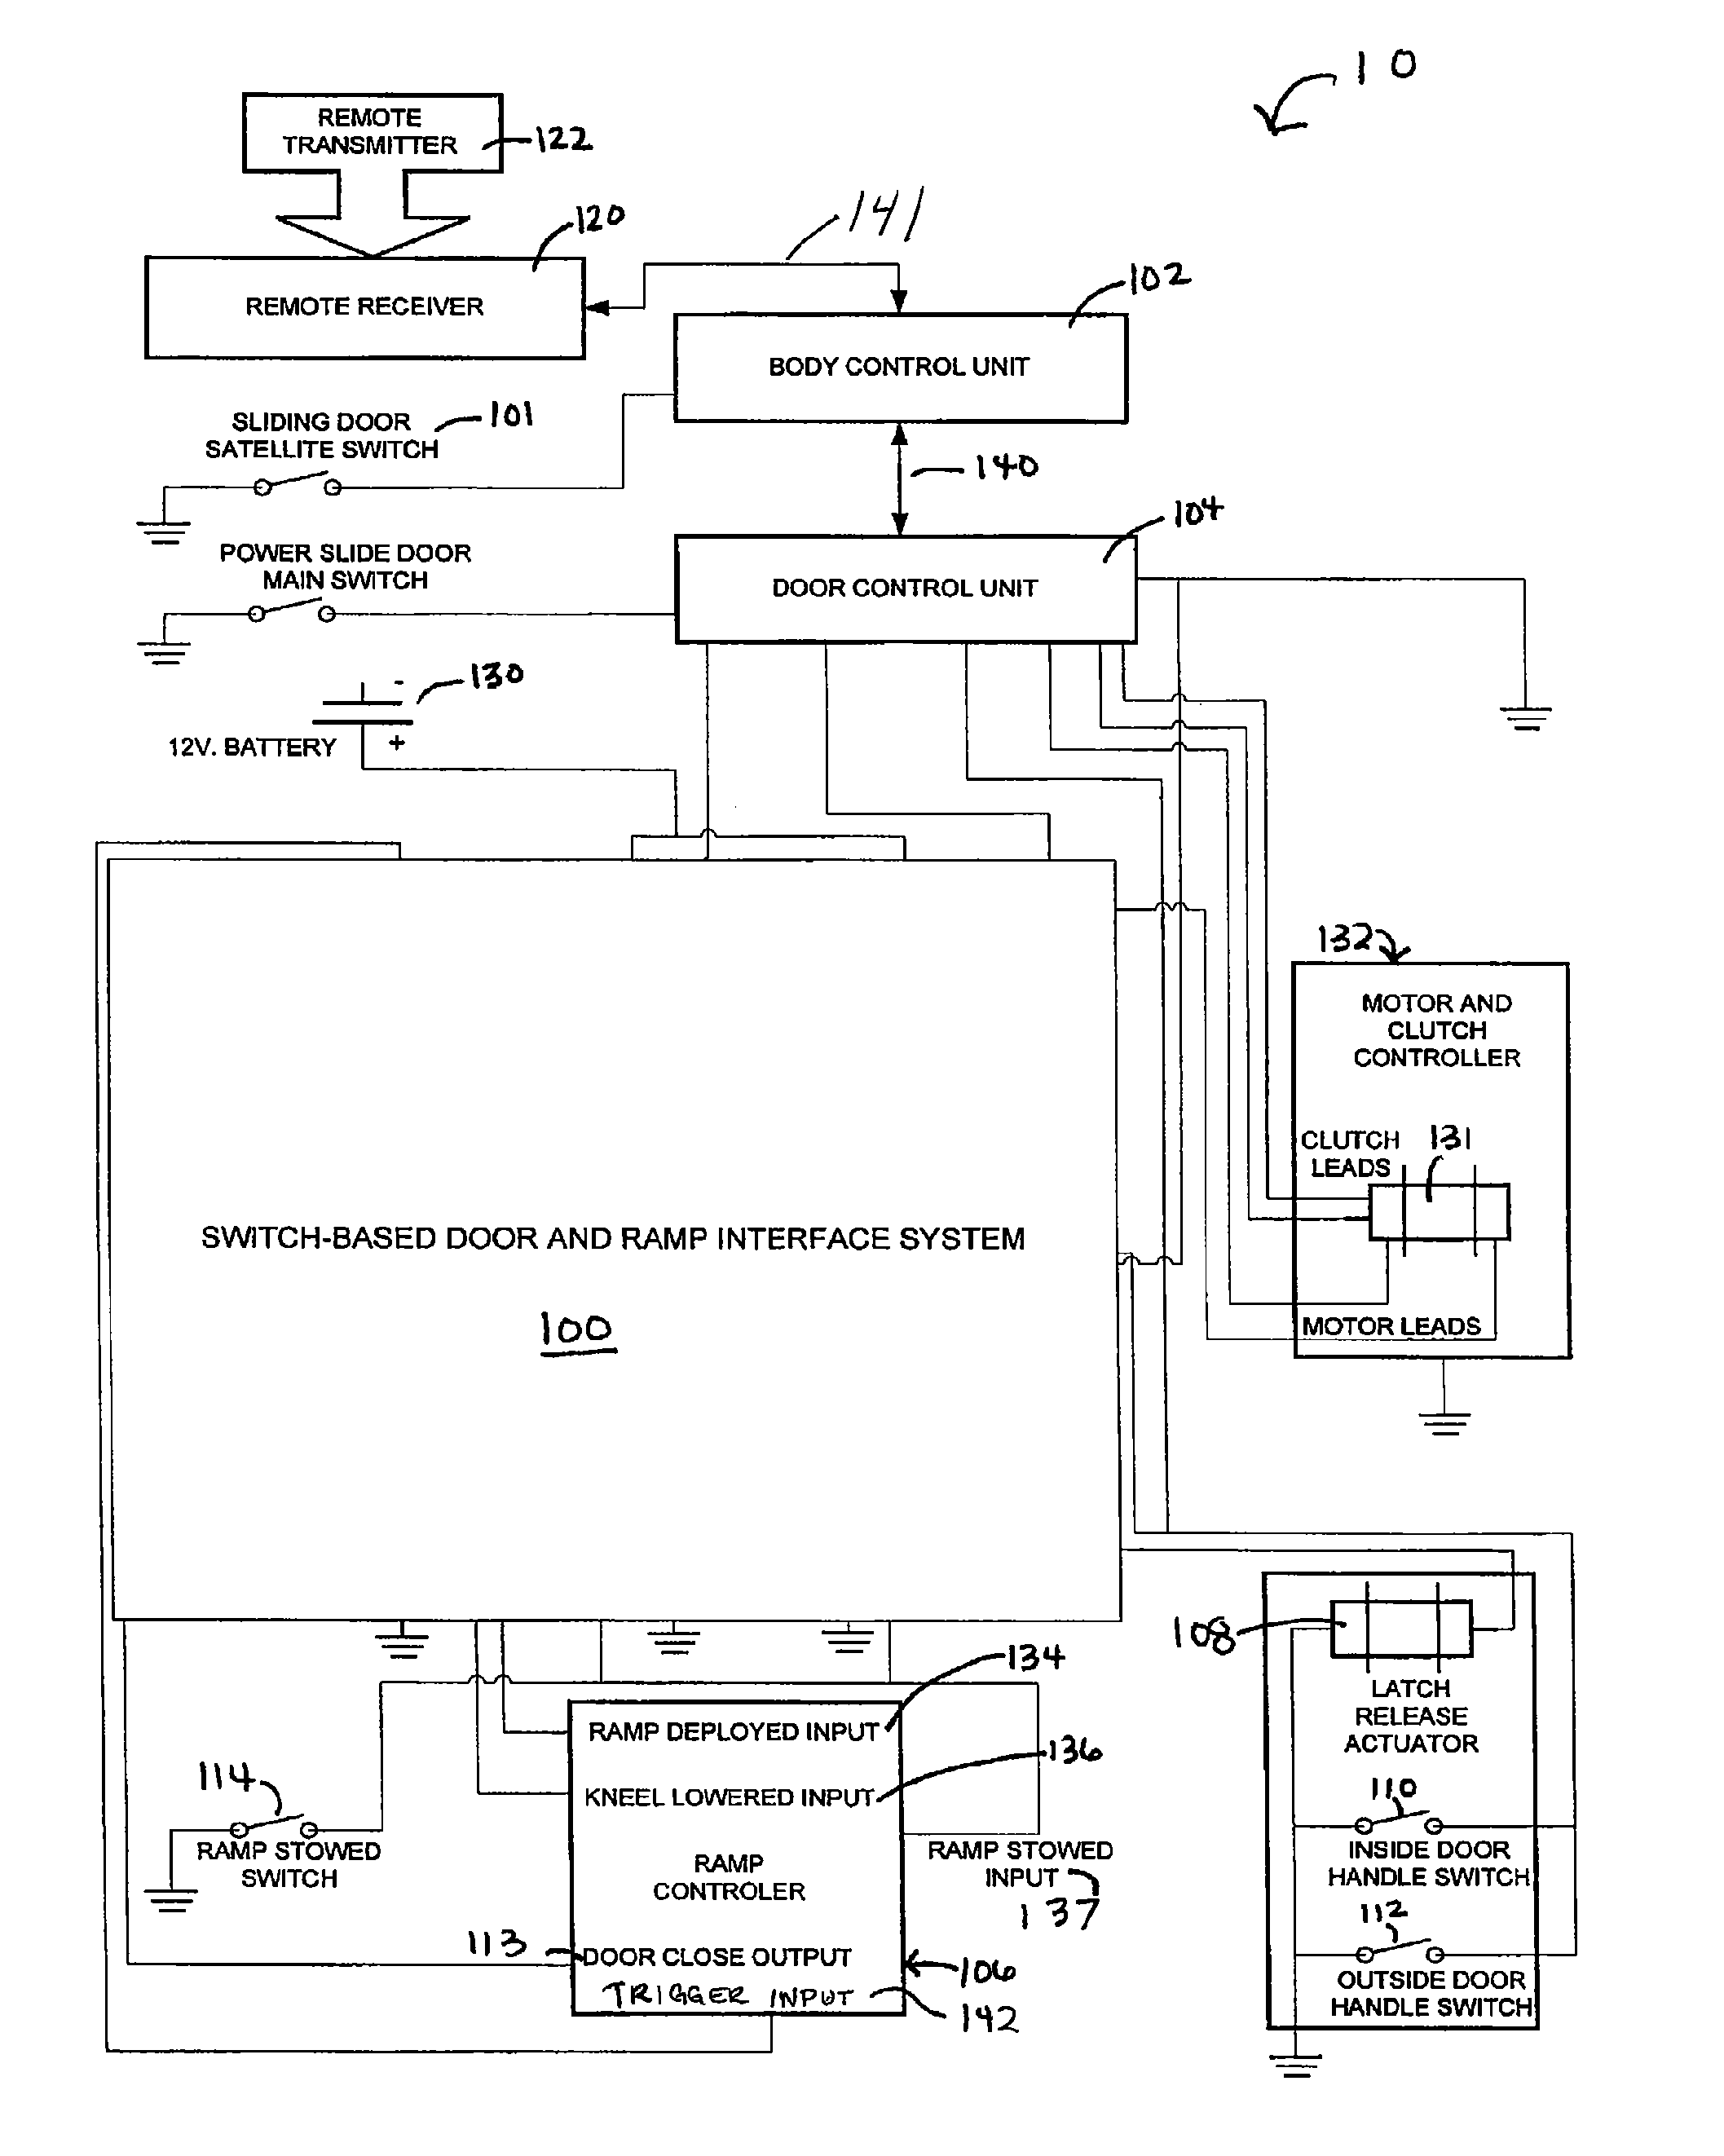 patent us7960853 switch based door and ramp interface system patent drawing